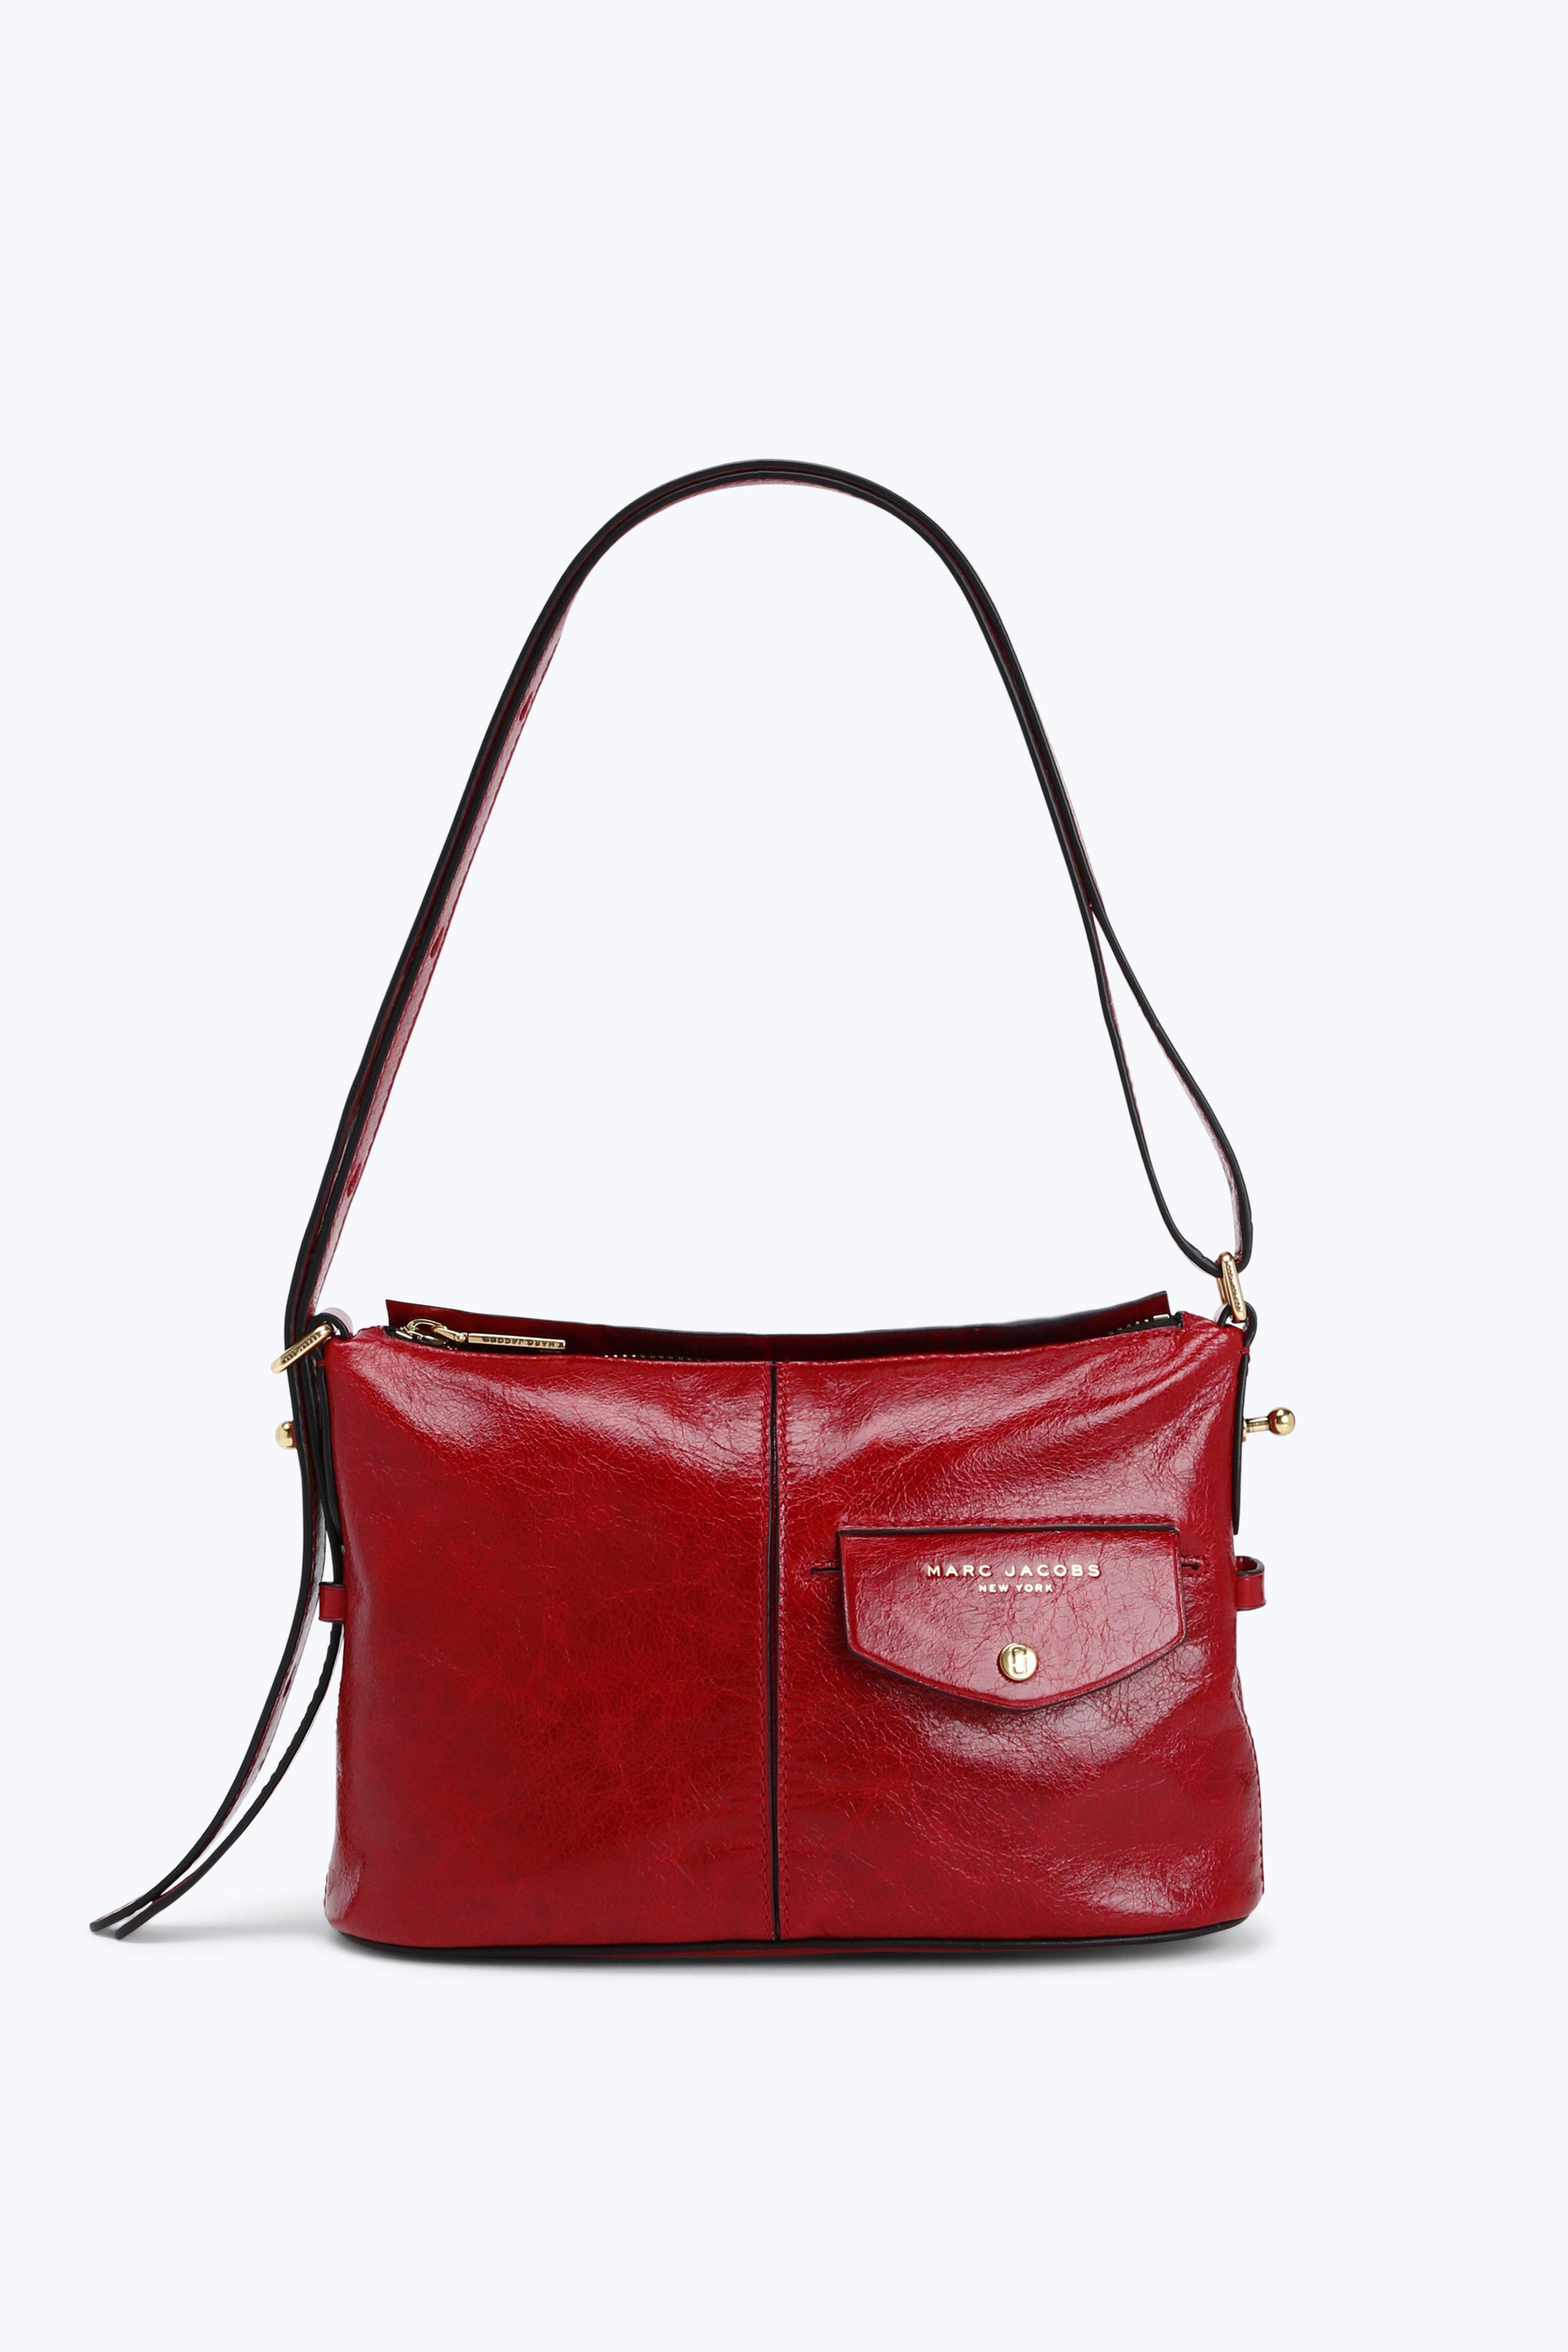 The Vintage Side Sling In Red Crossbody Shoulder Bag Shoulder Bag Leather Crossbody